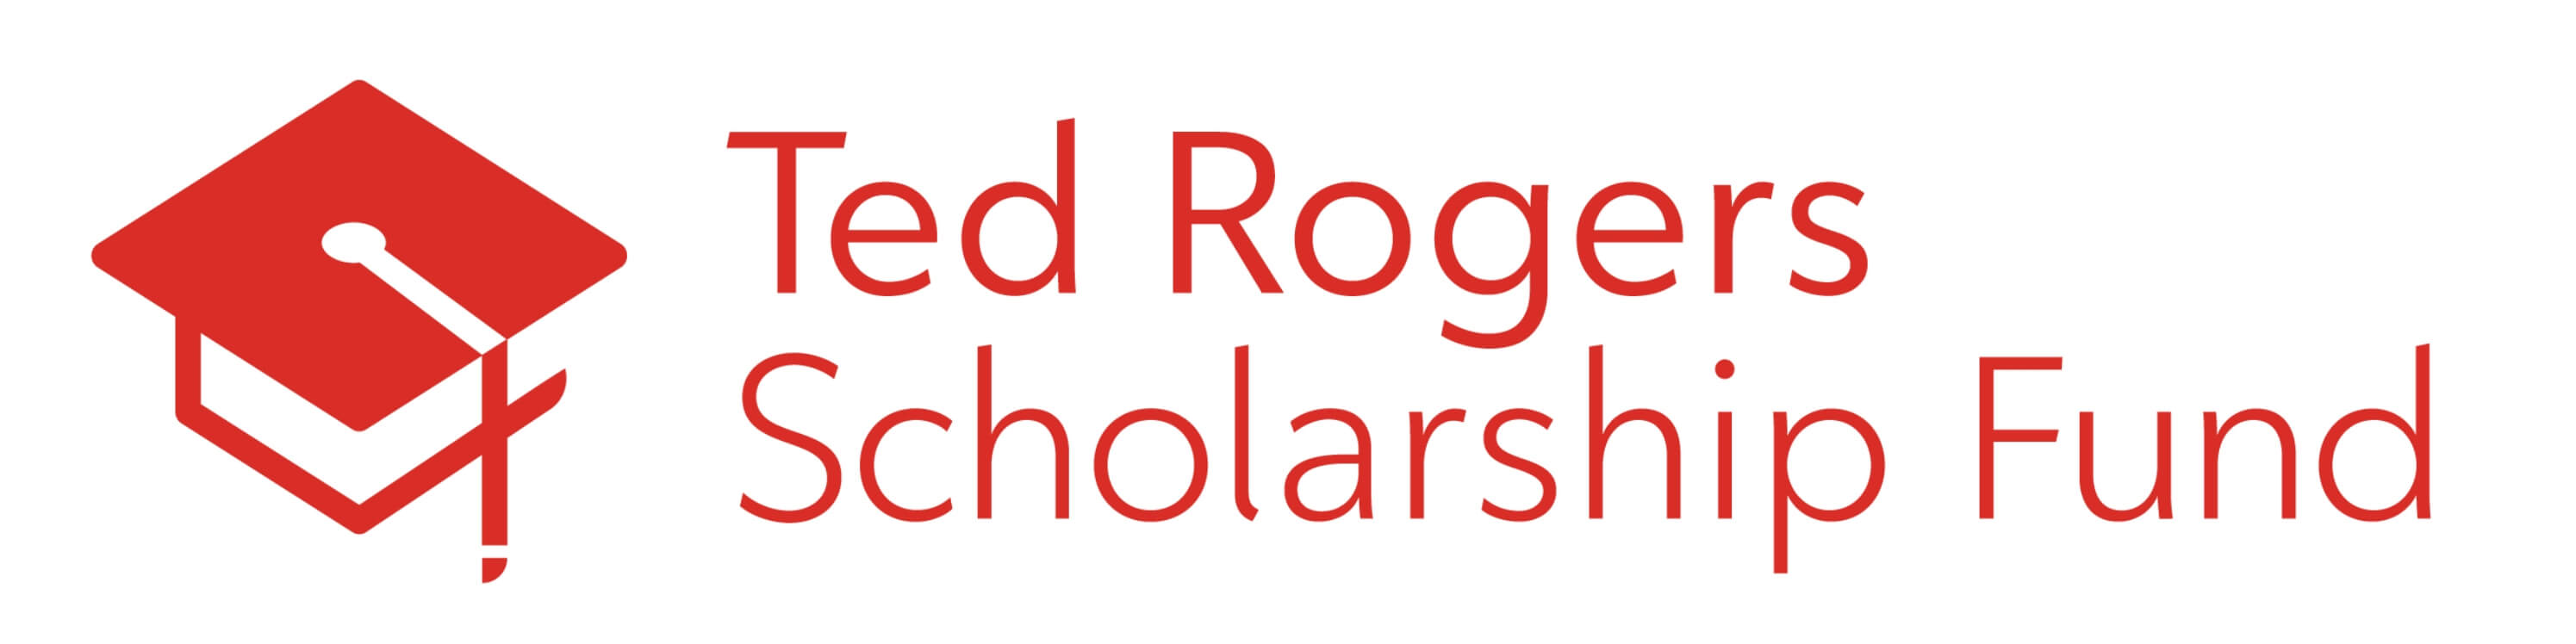 Ted Rogers Scholarship Fund Logo